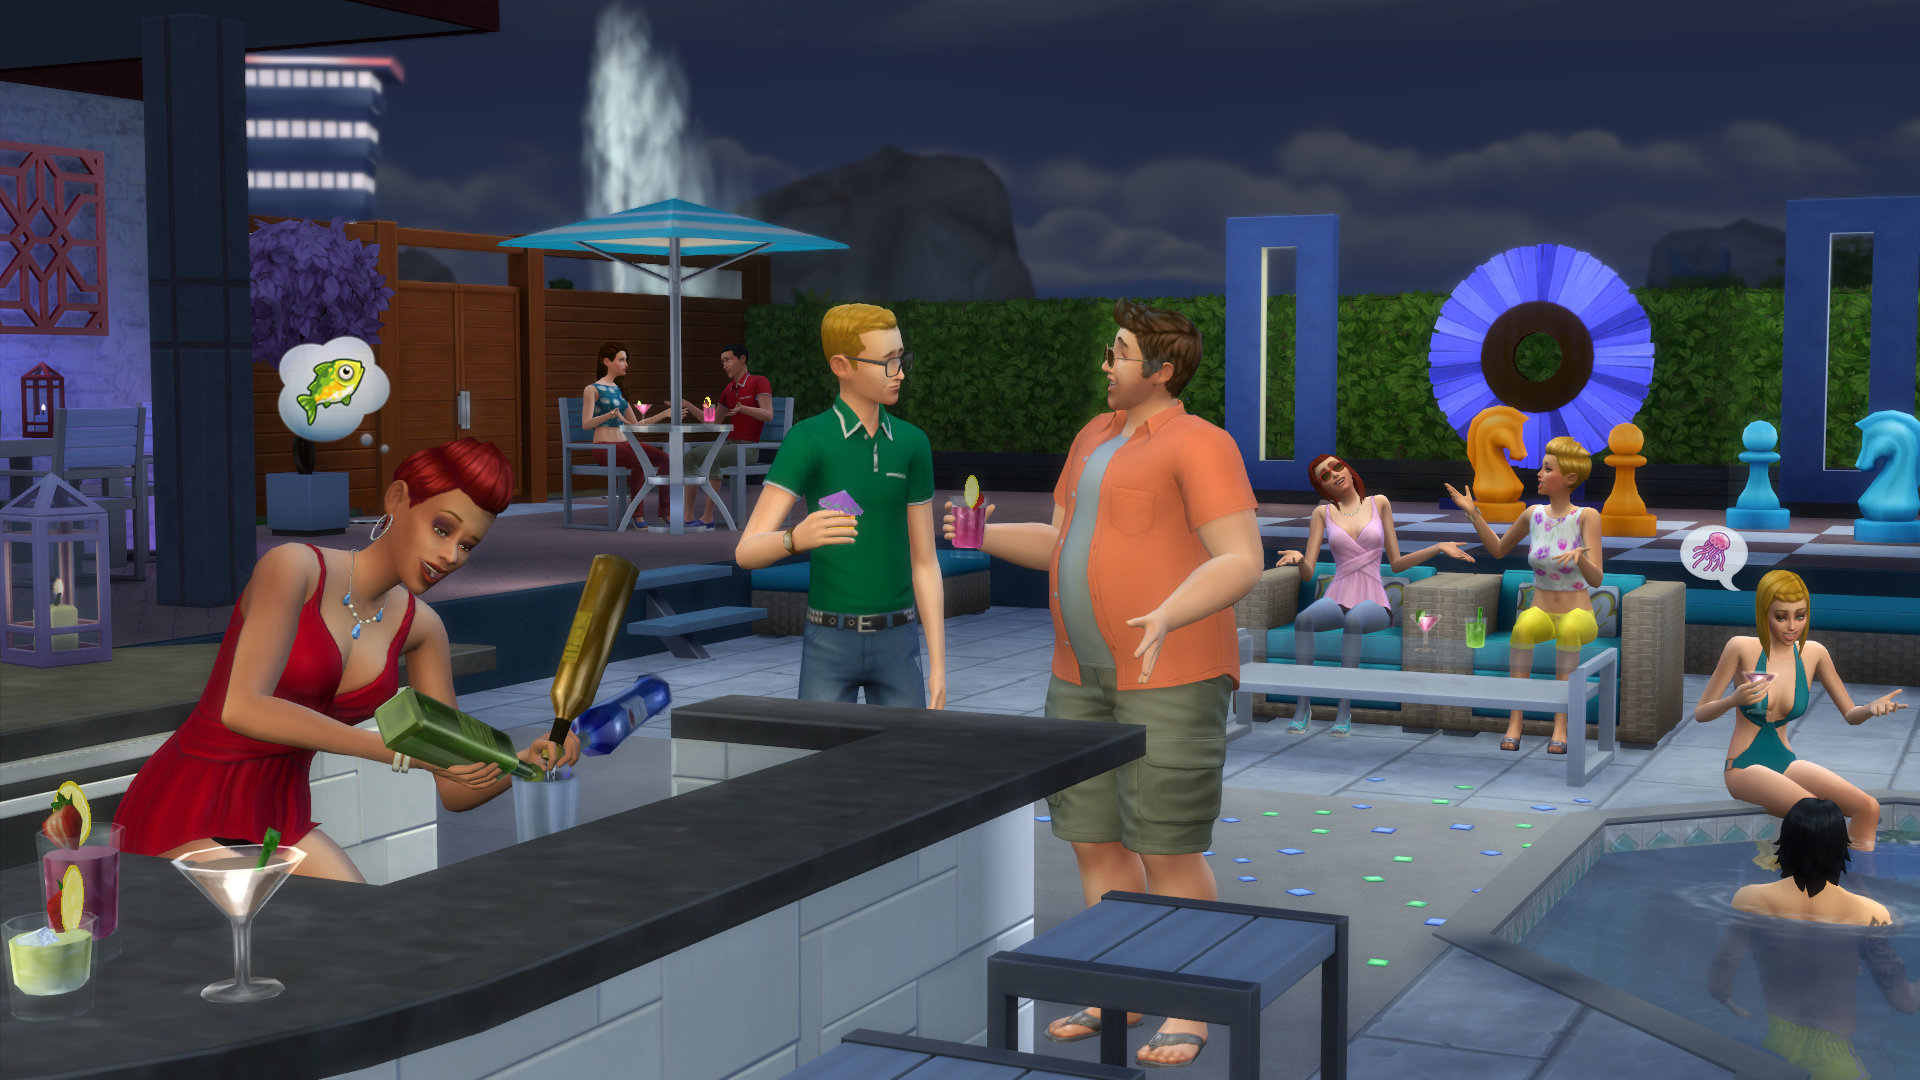 sims 4 video game review on The sims 4 review by sam quirke, 11 months ago the sims 4 has one of the most obtuse and maddening graphical user interfaces seen from a major title on home consoles this is an annoyance in any game, but in a simulator it can be a deal-breaker.